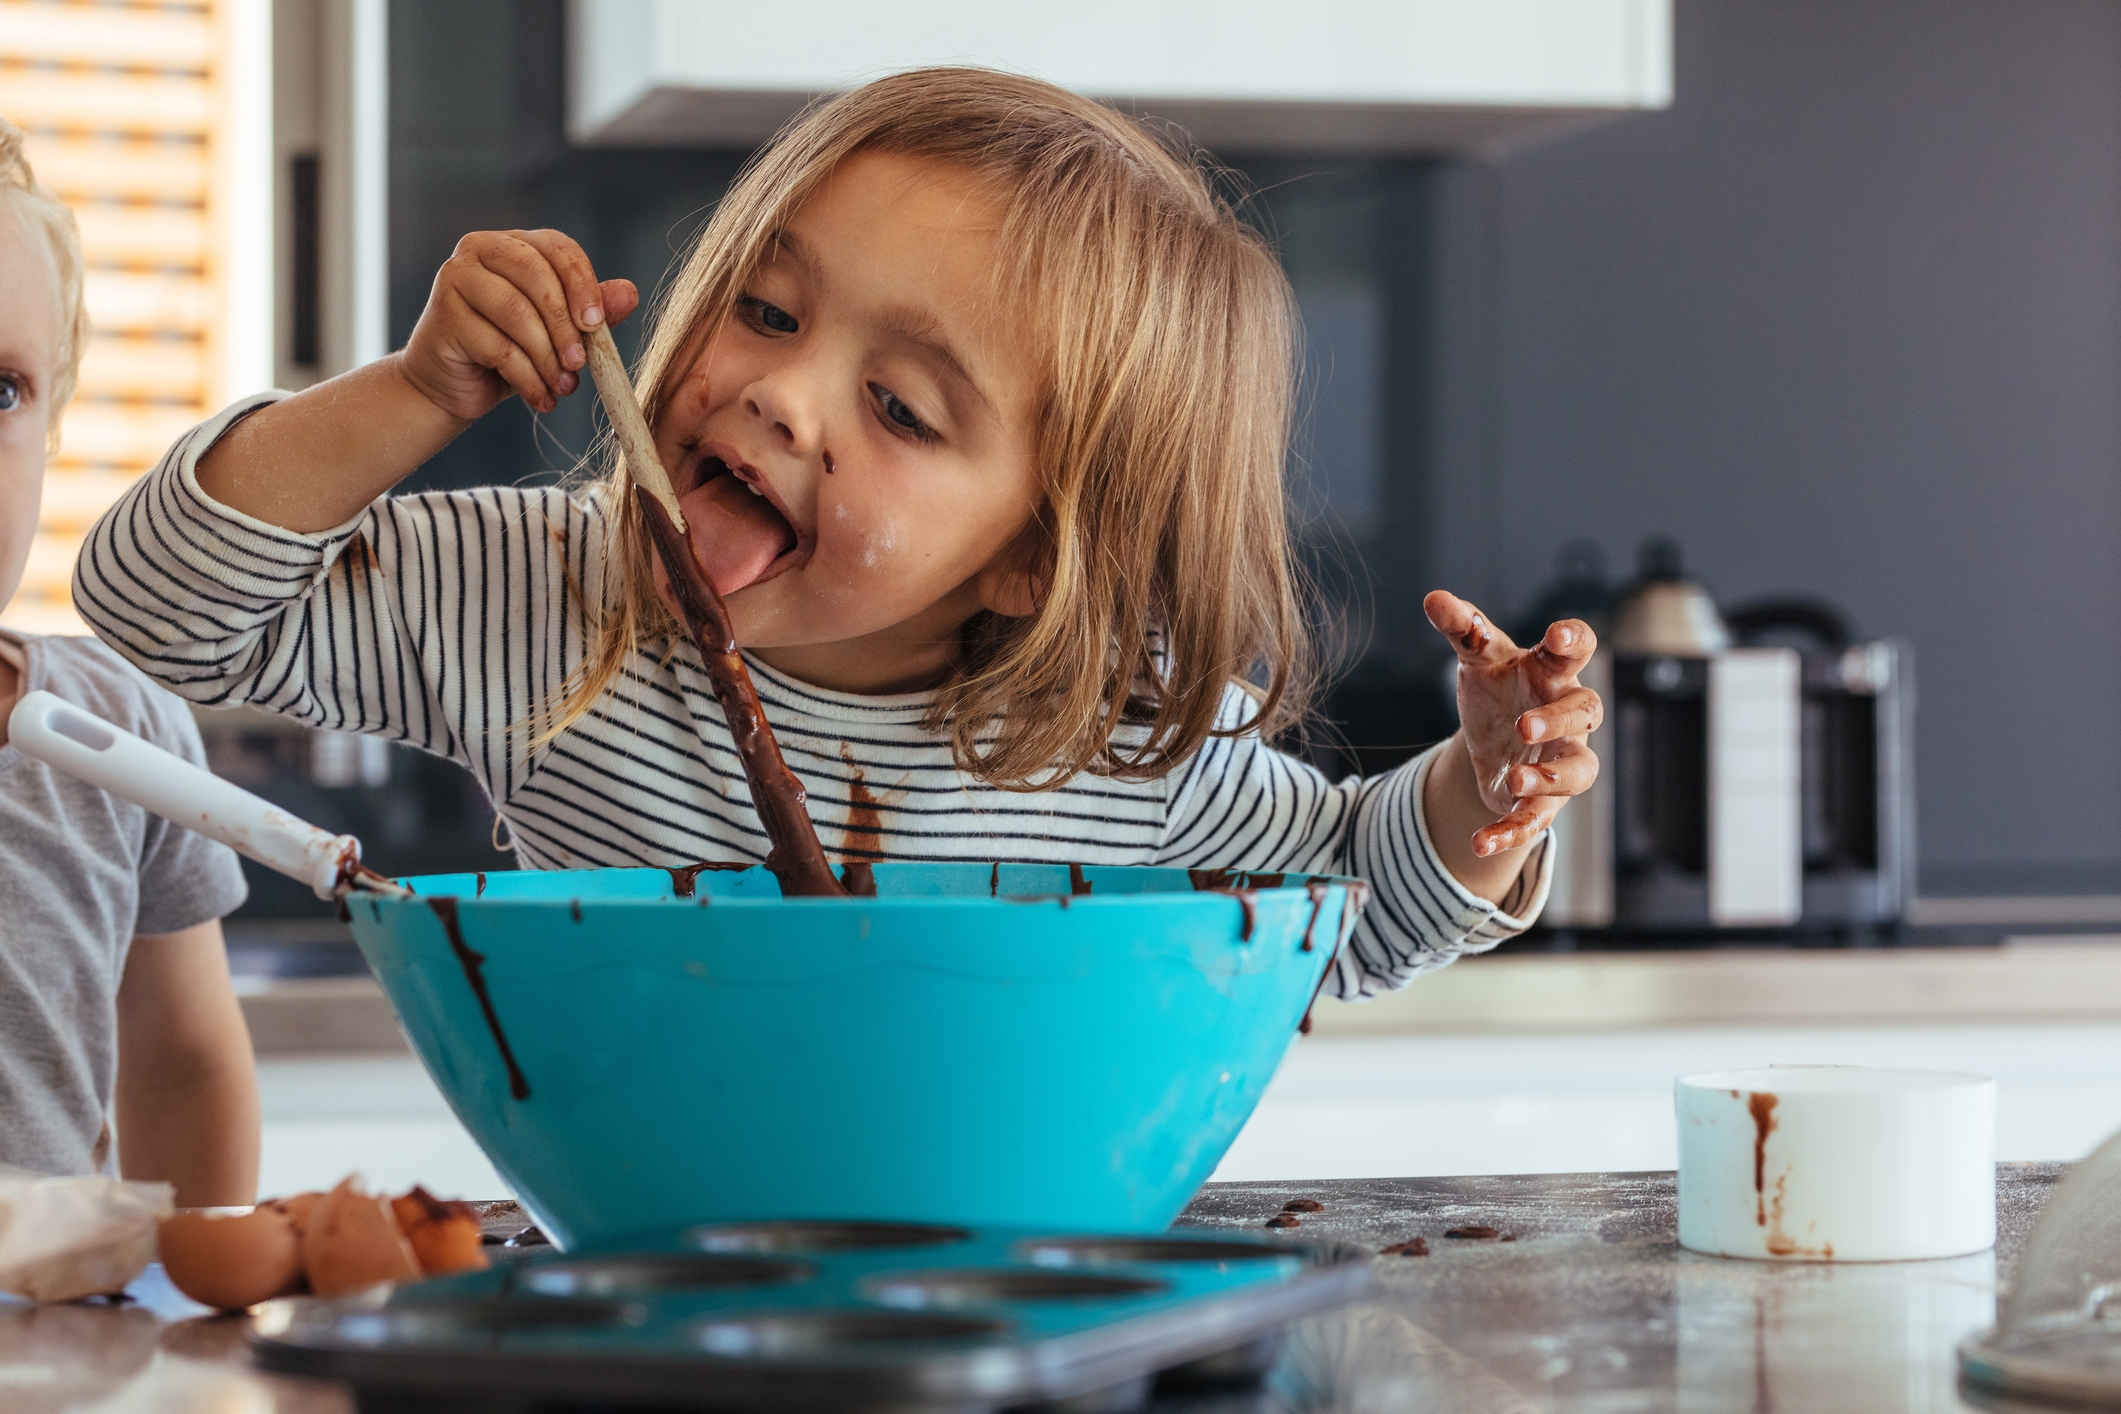 Parents SHOULD let kids play with their food, experts reveal | The Sun